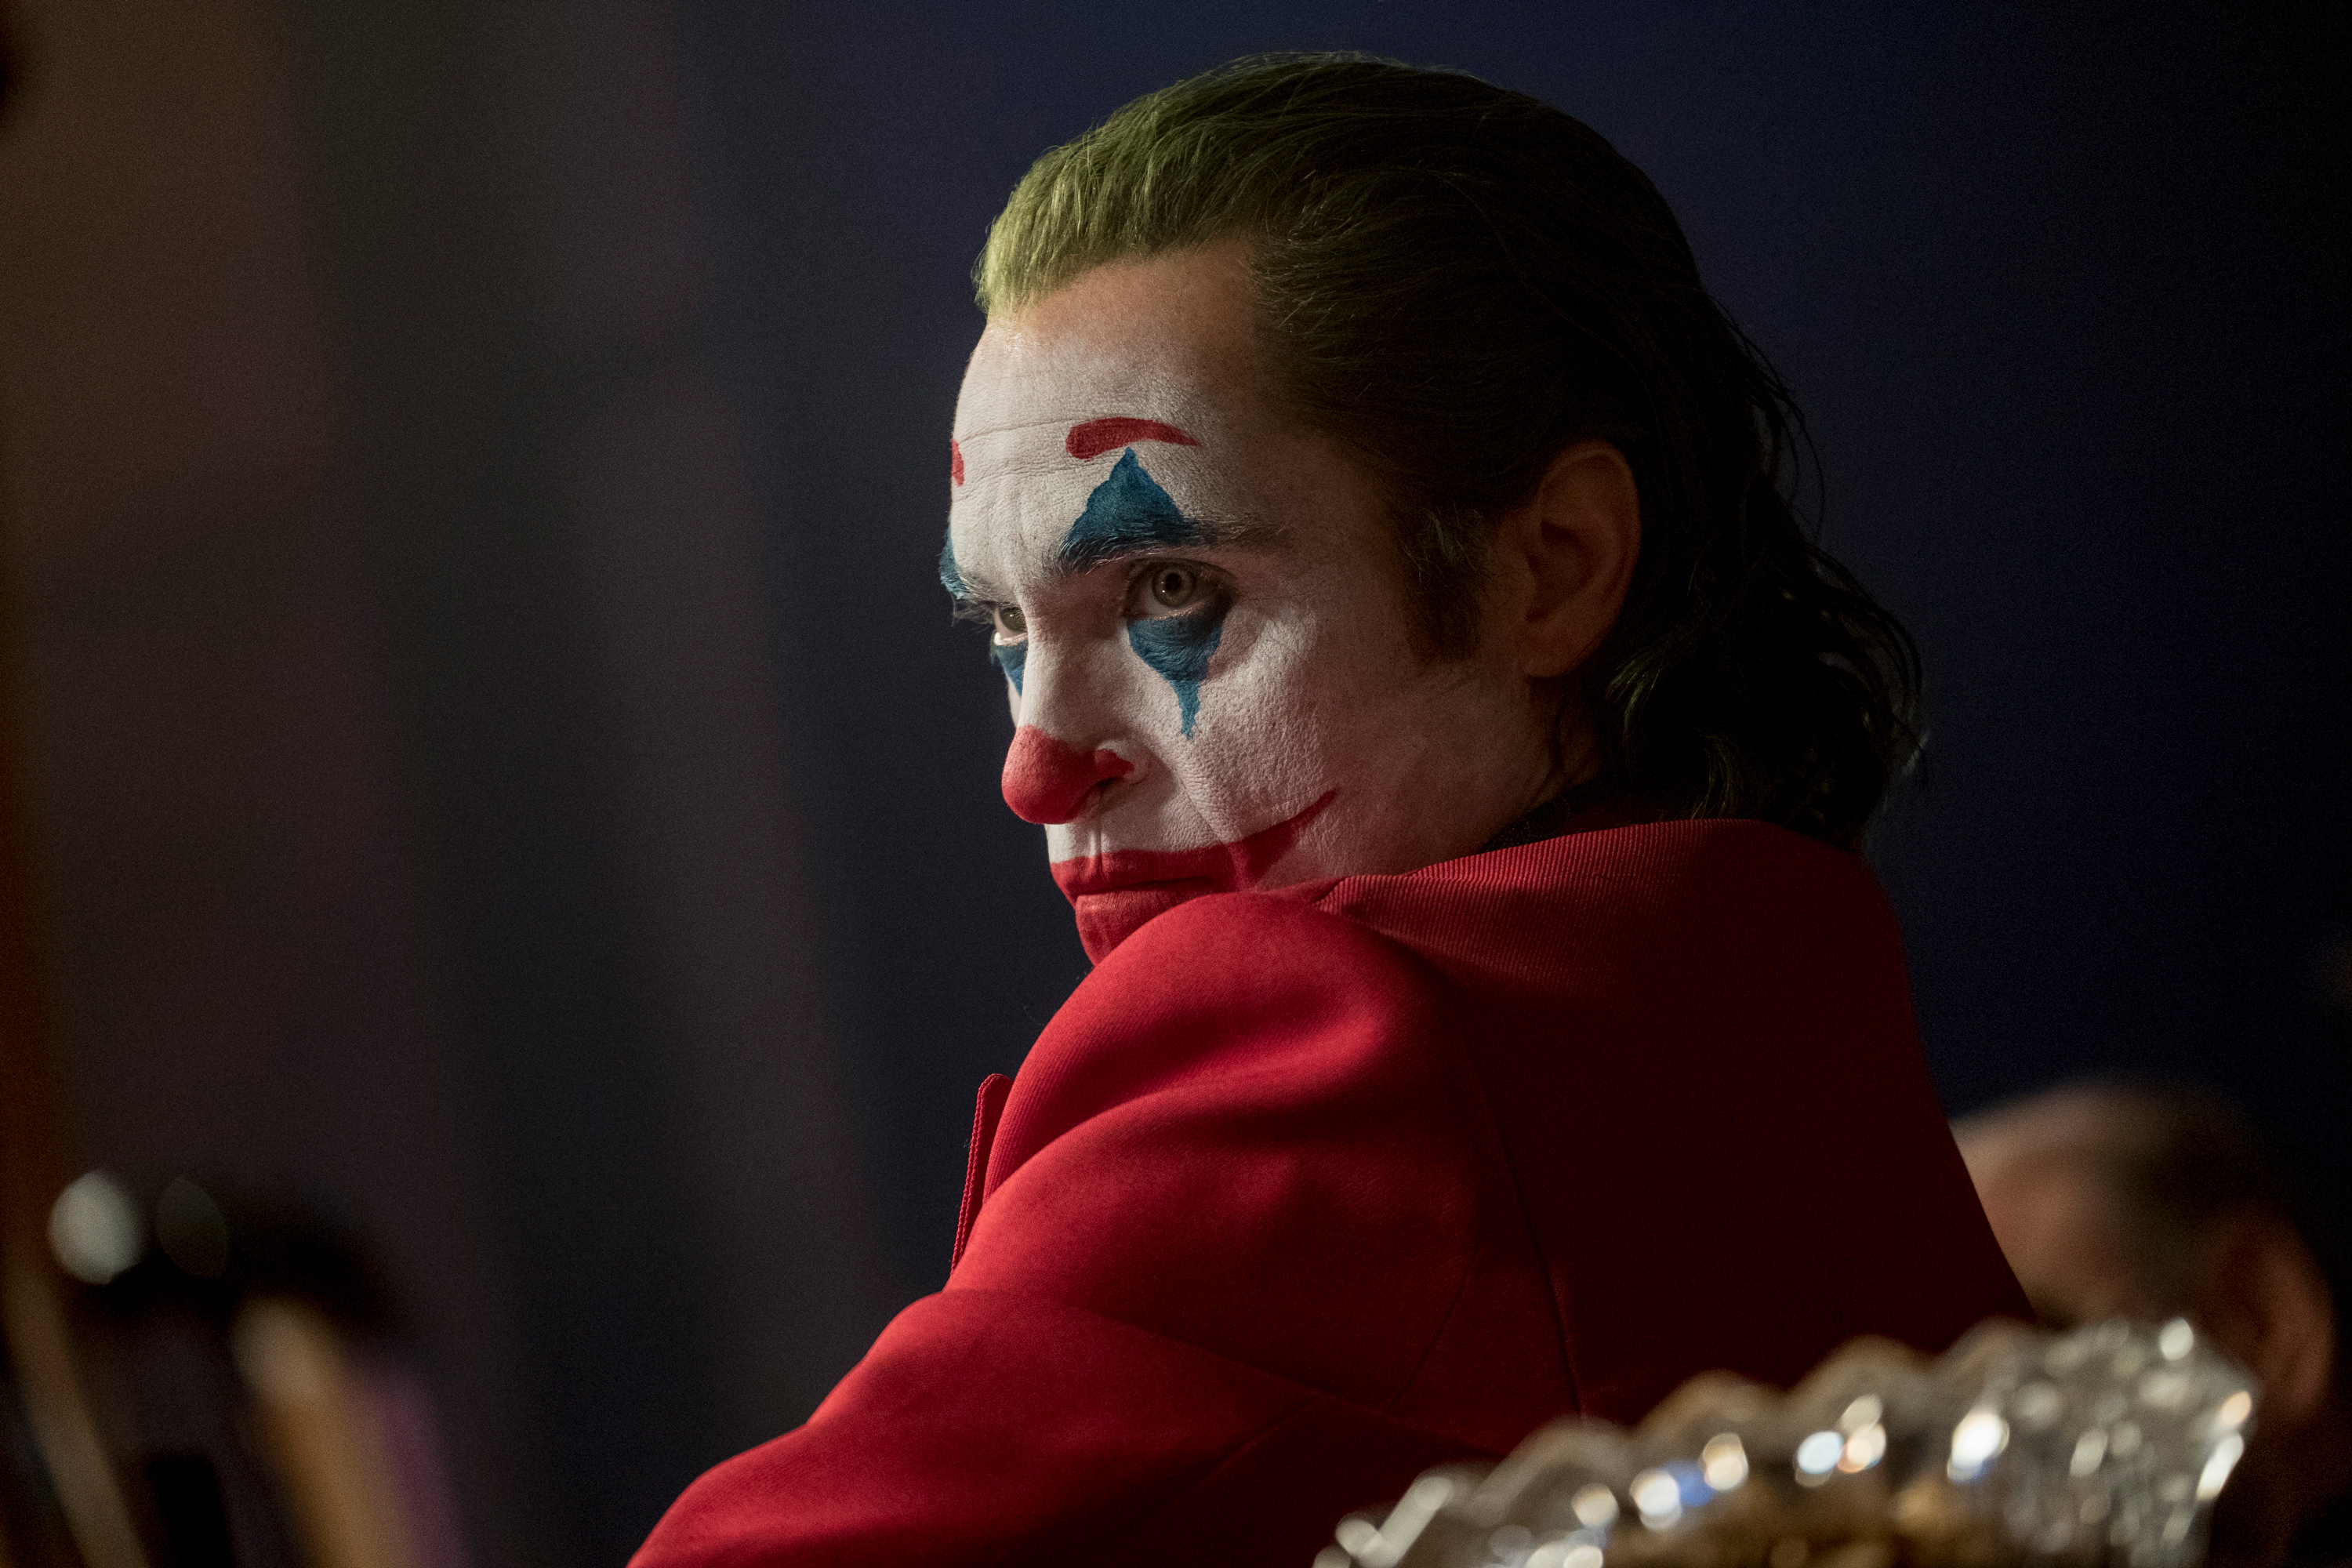 """This image released by Warner Bros. Pictures shows Joaquin Phoenix in a scene from """"Joker,"""" in theaters on Oct. 4. Alarmed by violence depicted in a trailer for the upcoming movie """"Joker,"""" some relatives of victims of the 2012 Aurora movie theater shooting asked distributor Warner Bros. on Tuesday to commit to gun control causes. Twelve people were killed in the suburban Denver theater during a midnight showing of the Batman film, """"The Dark Knight Rises,"""" also distributed by Warner Bros."""